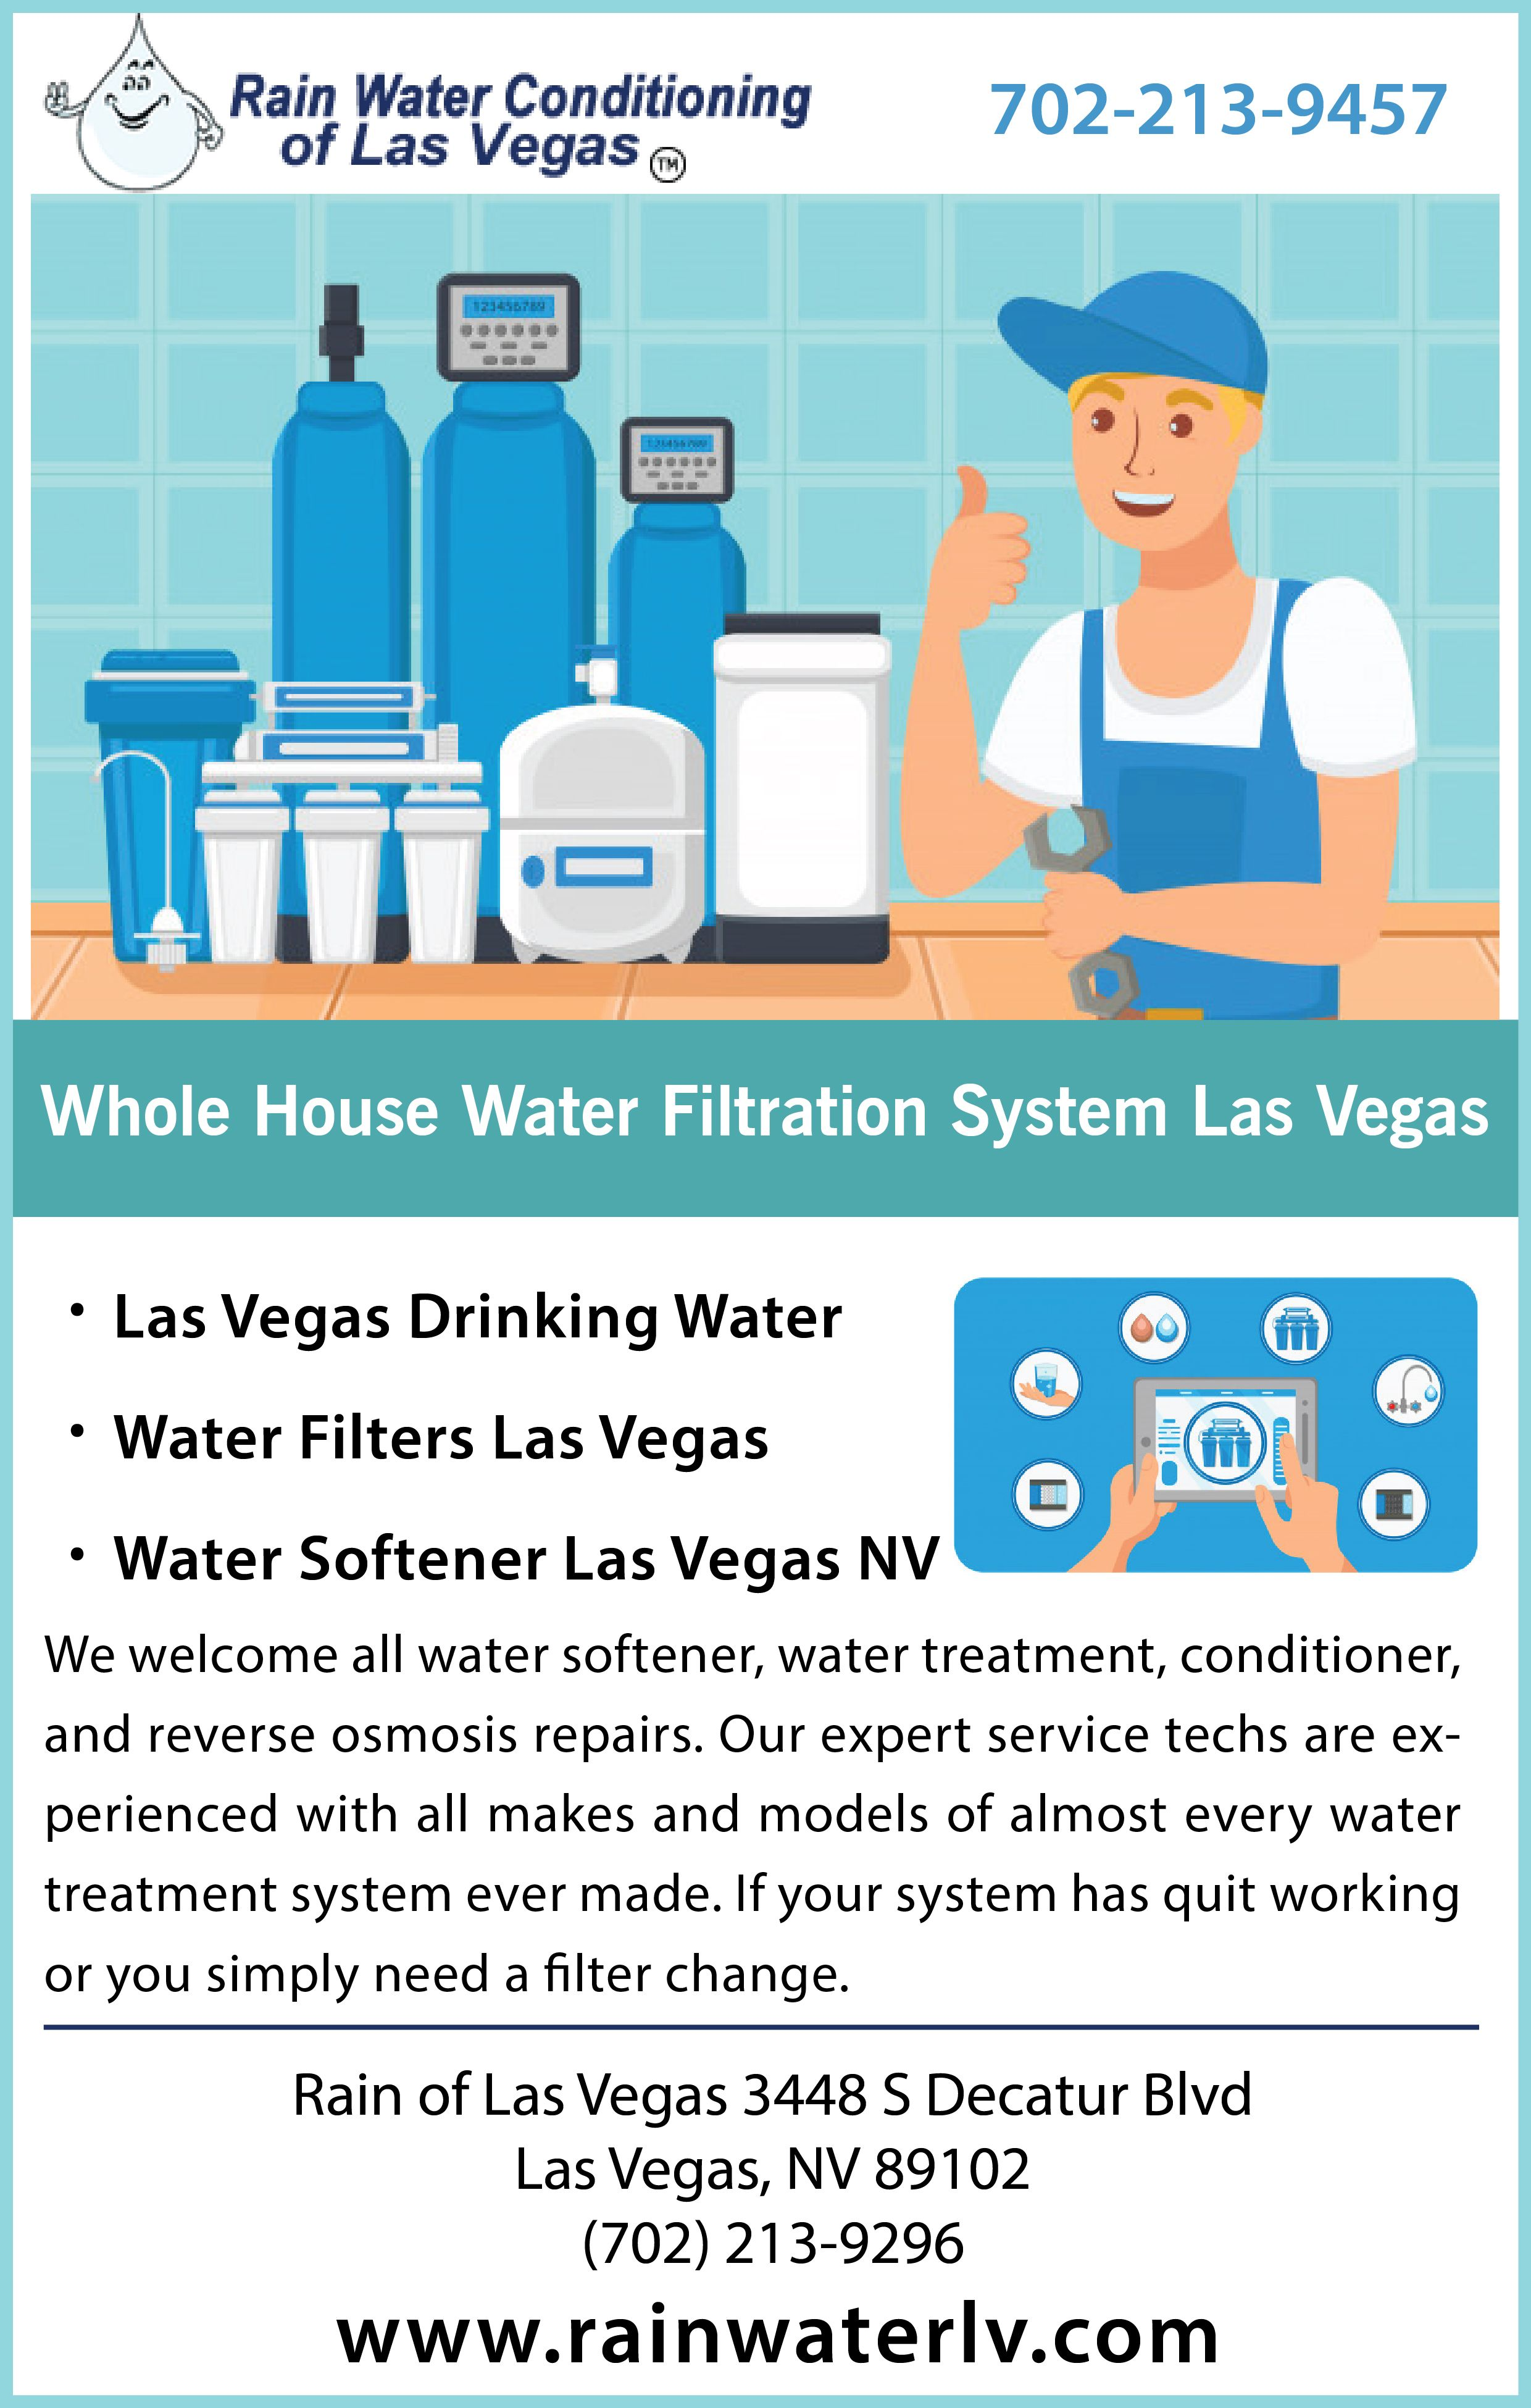 Are You In Need Of A Reverse Osmosis Membrane Filter For Your Ro Filtration System Rain Water Conditioning Of Las Vegas Offers The Best Quality Membrane Filter In 2020